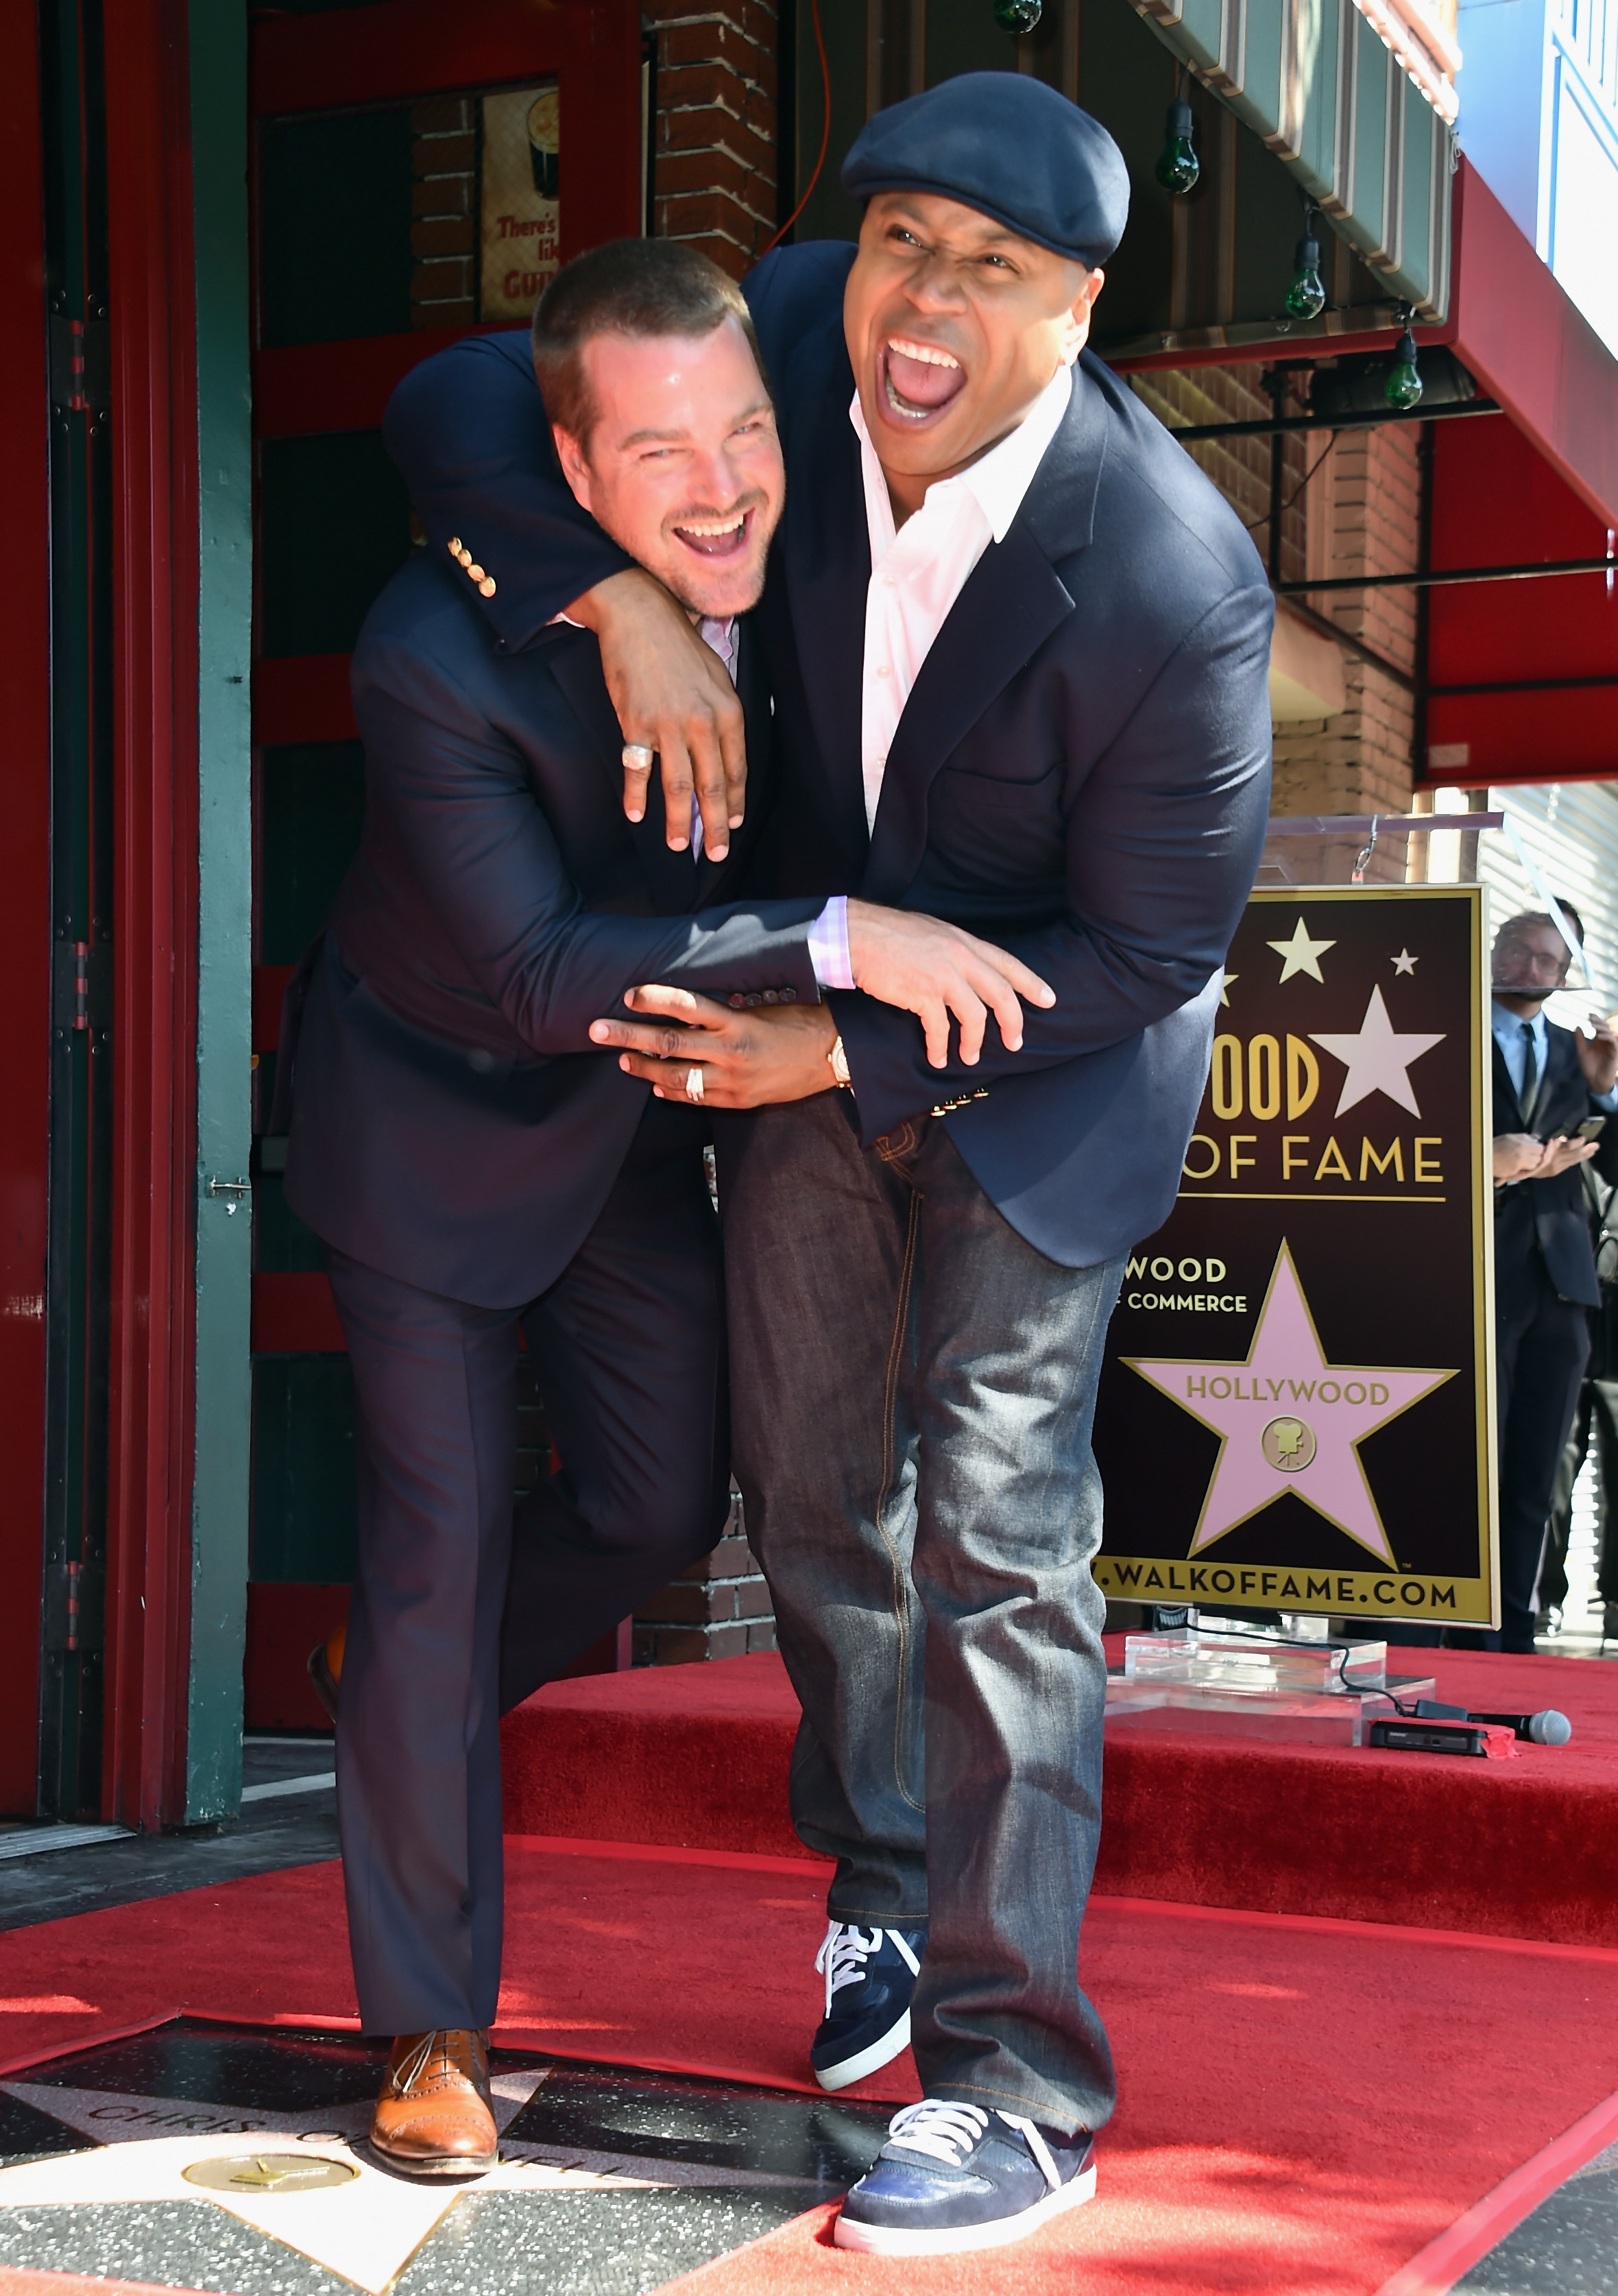 Newest star: Actors Chris O'Donnell and LL Cool J attend a ceremony Thursday honoring O'Donnell with the 2,544th Star on Hollywood Walk Of Fame.